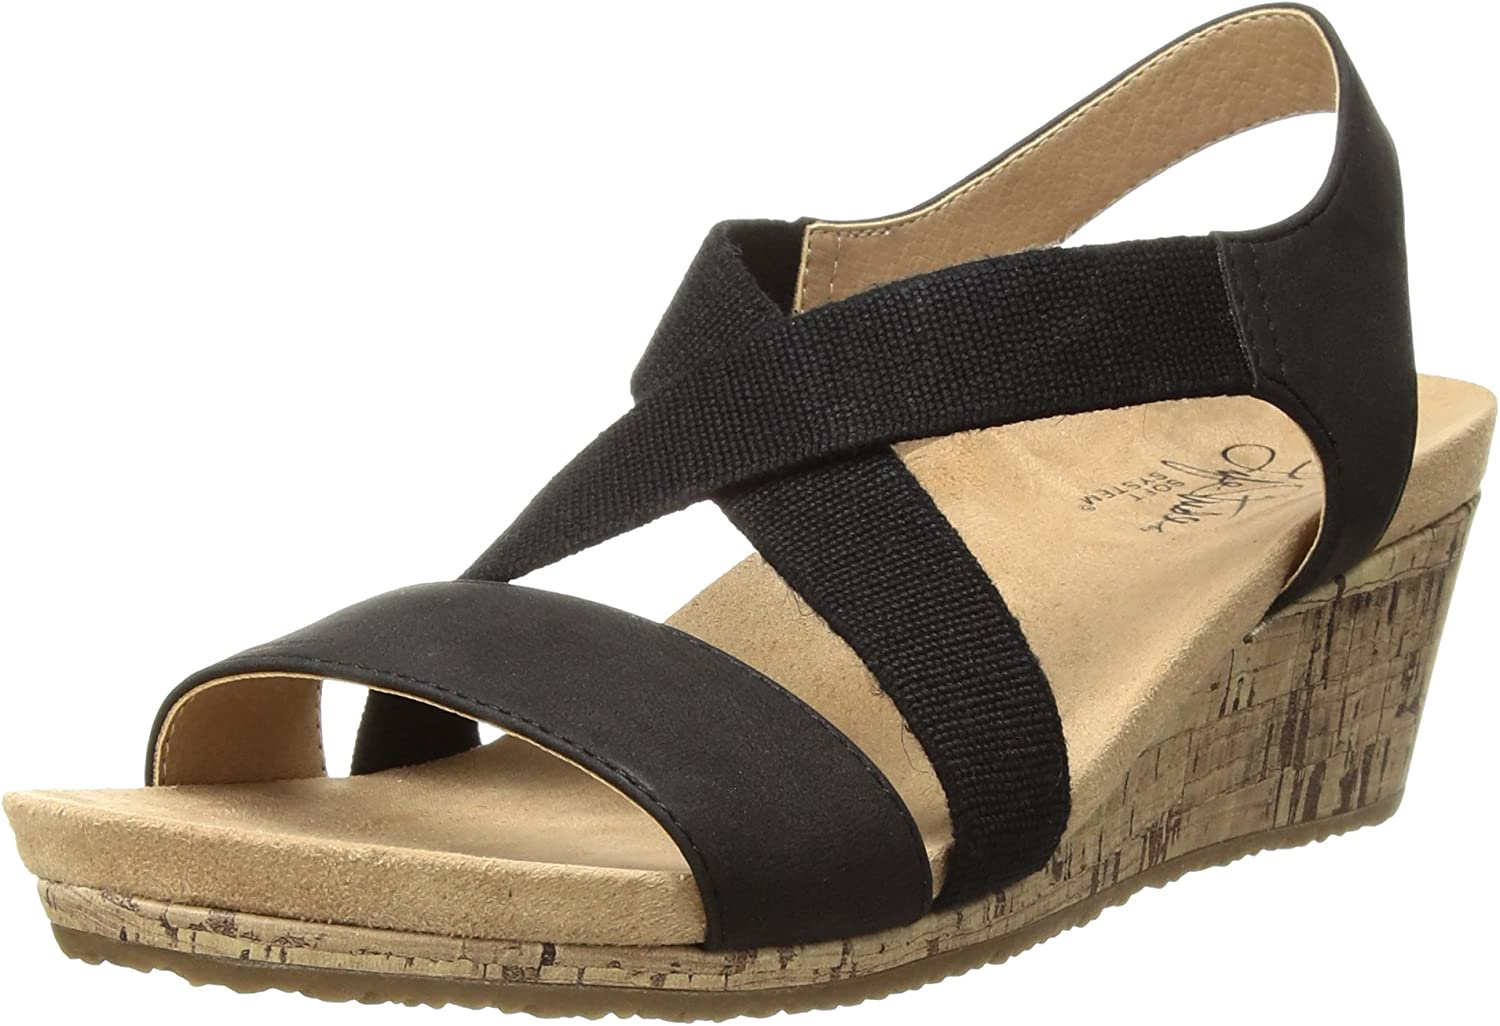 LifeStride Women's Lowest price challenge 2021new shipping free shipping Mexico Wedge Sandal